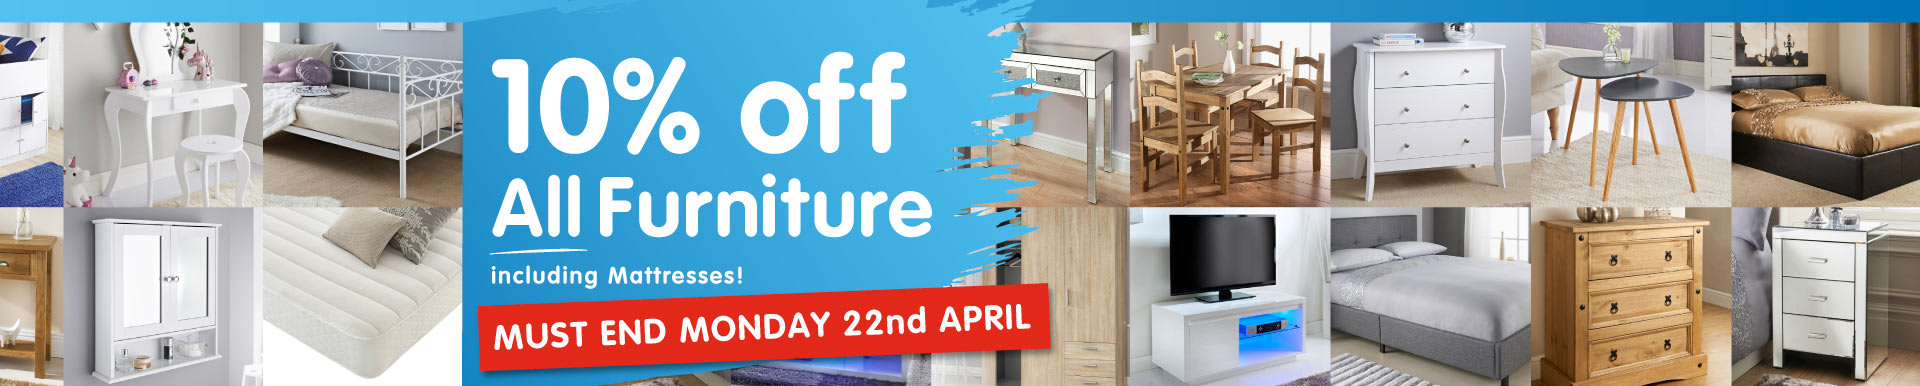 10% off Furniture Event at B&M.